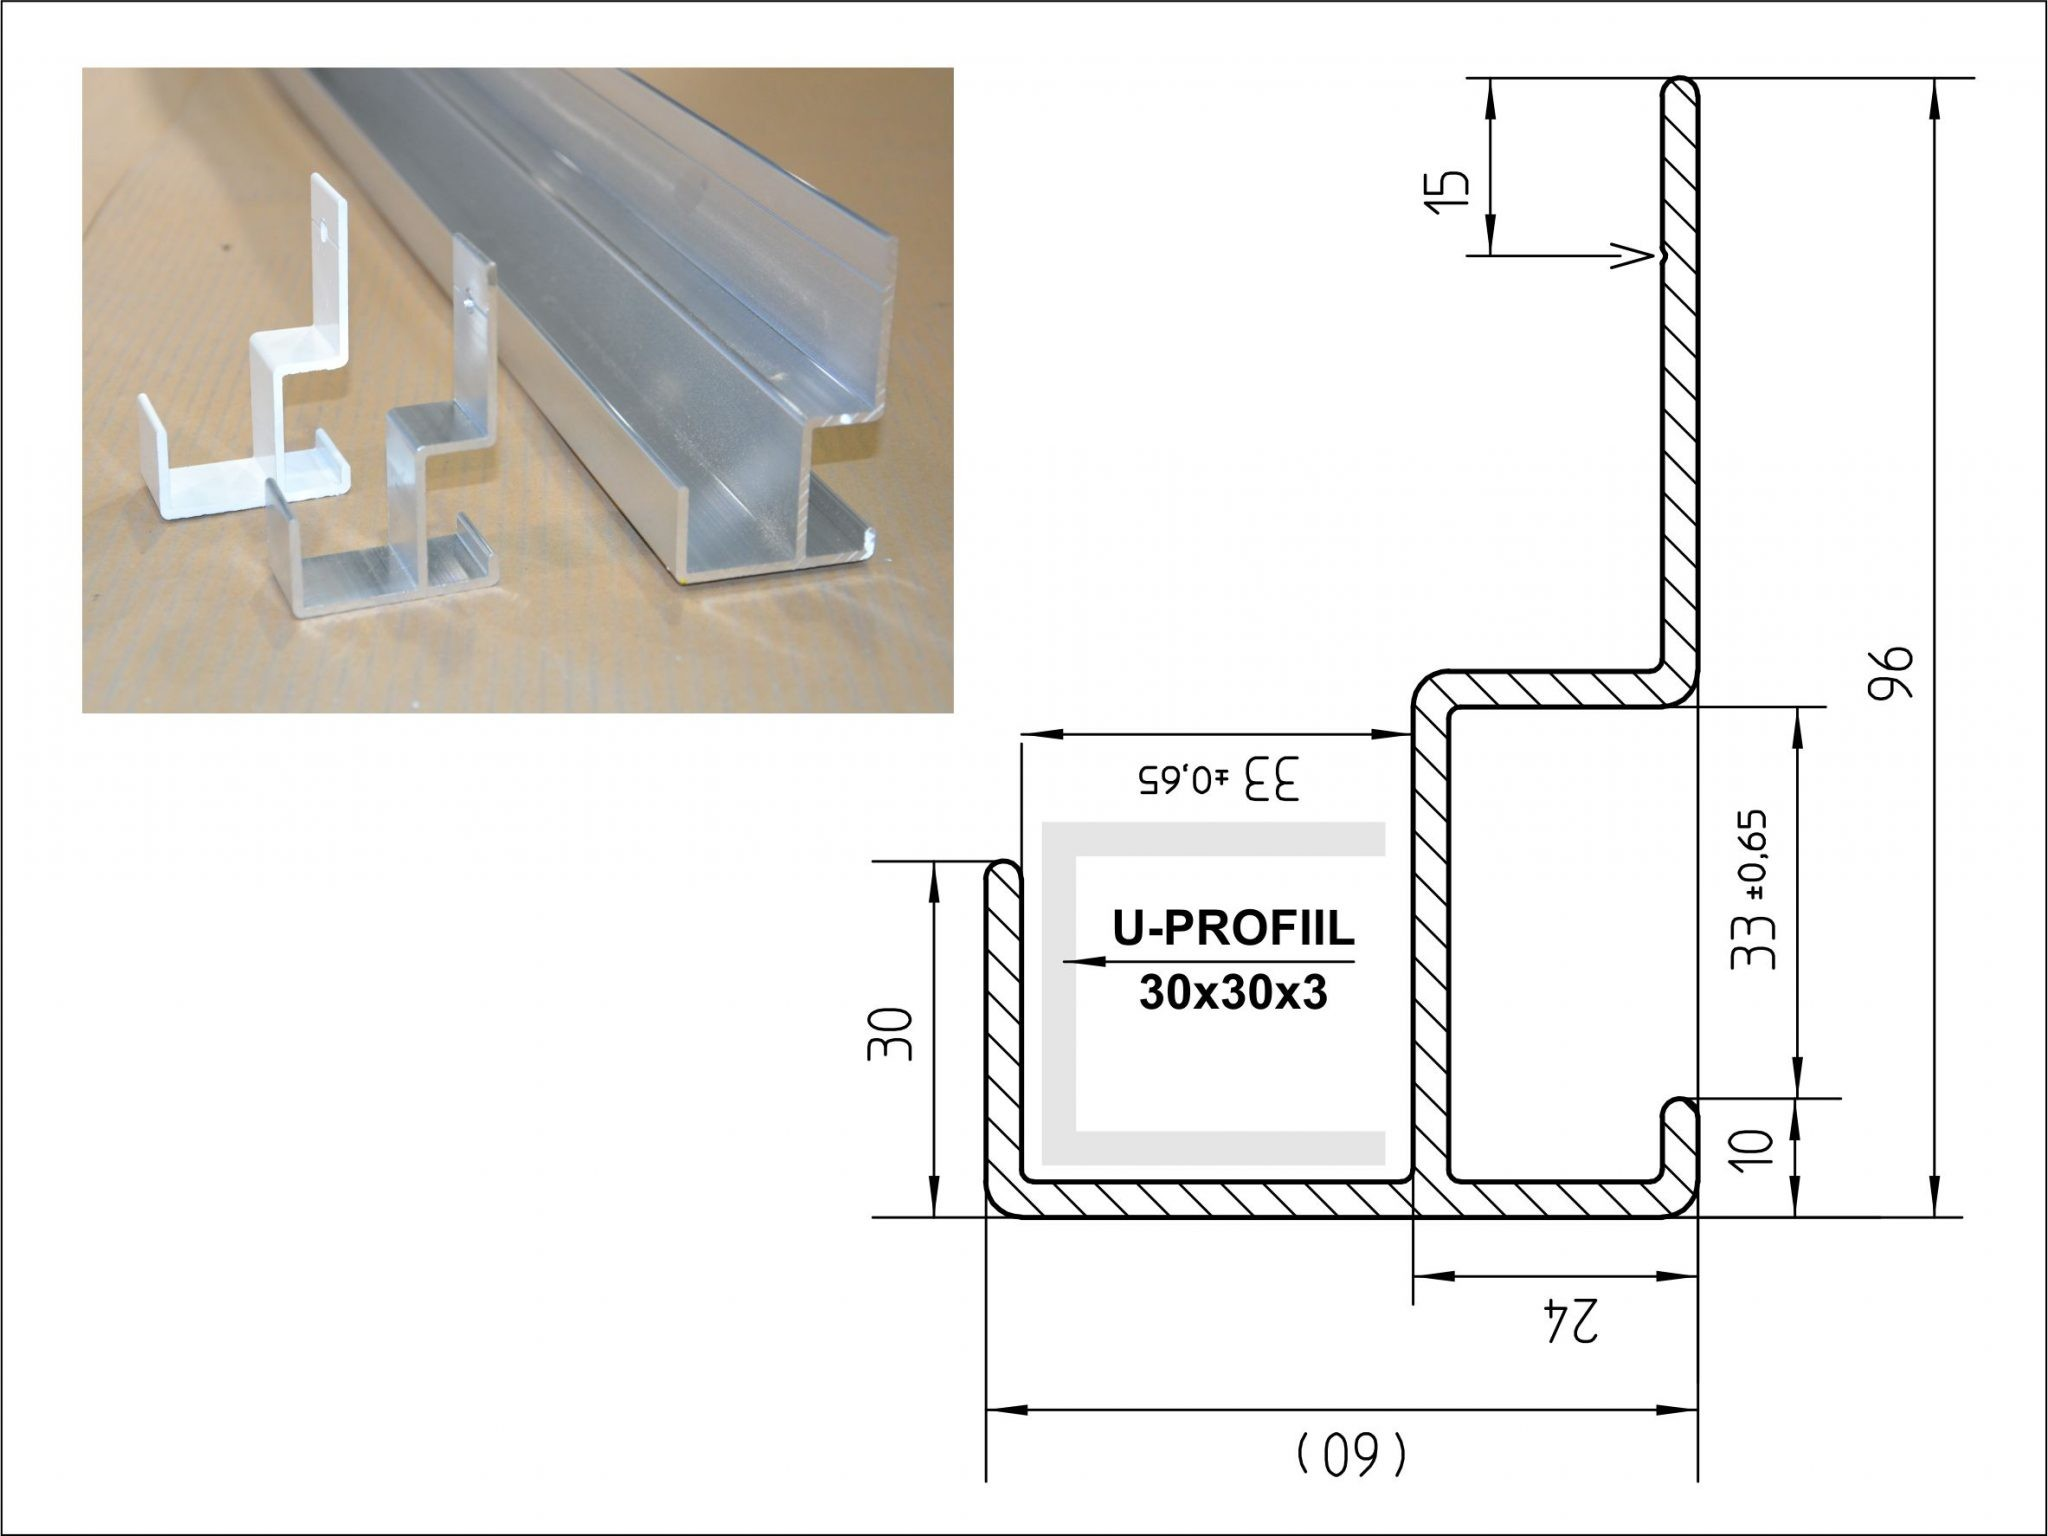 Mounting profile for channel letters